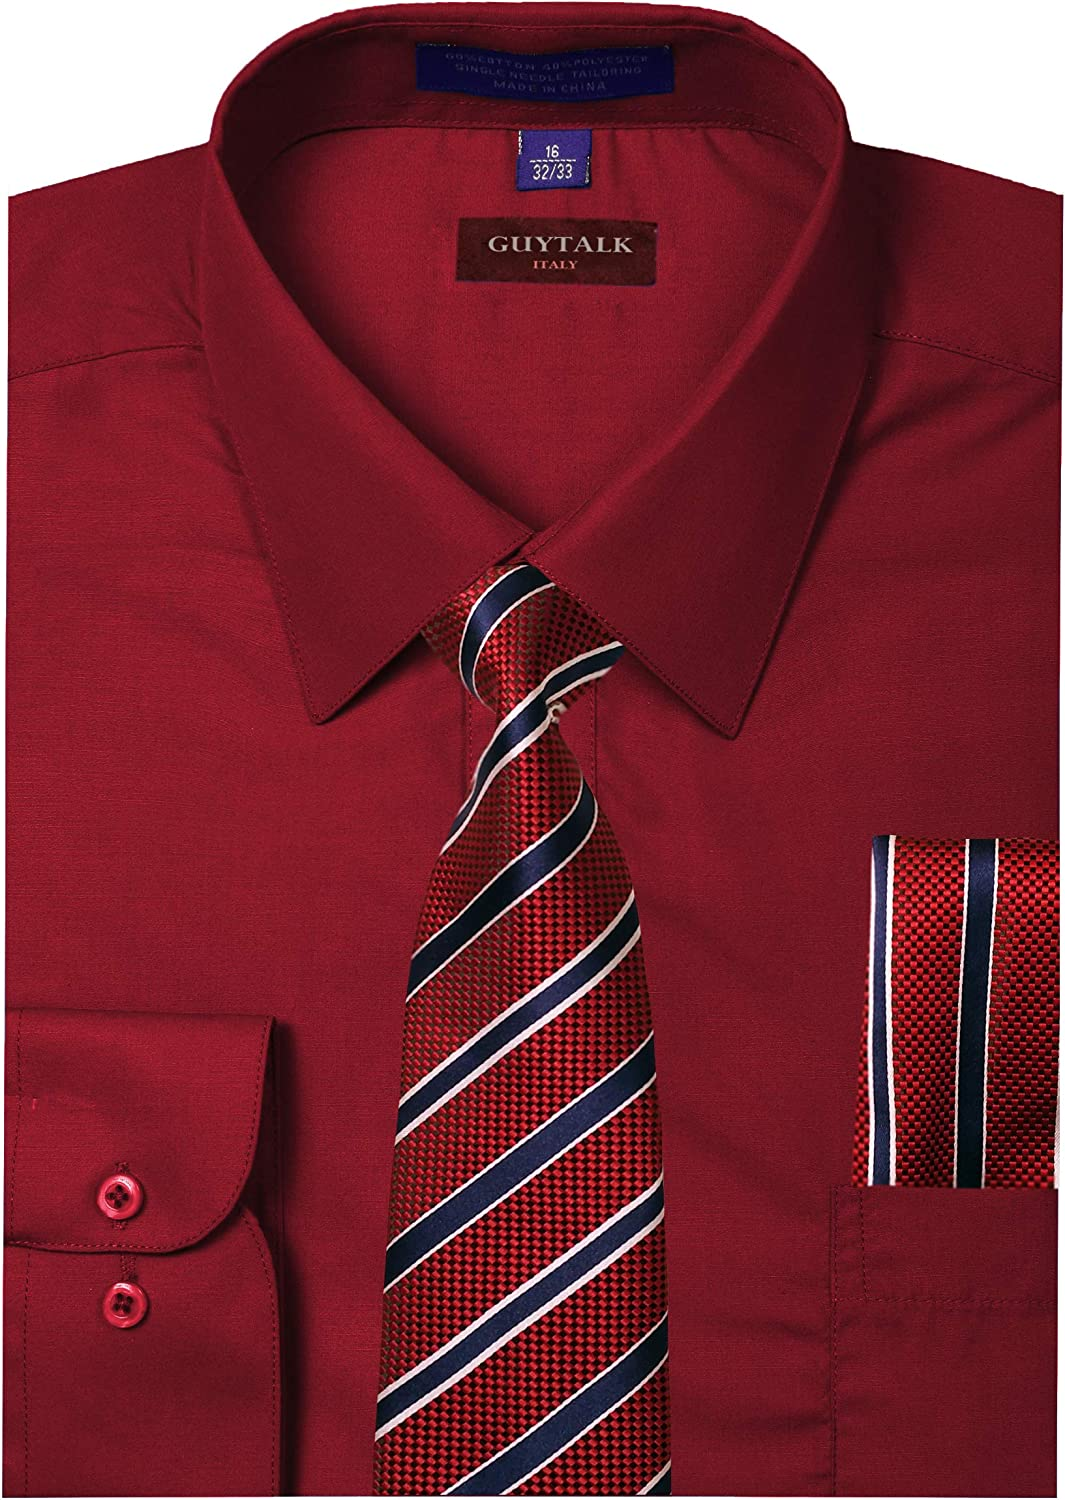 Guytalk Mens Dress Shirt with Matching Tie and Handkerchief(30 Colors, XS-5XL)